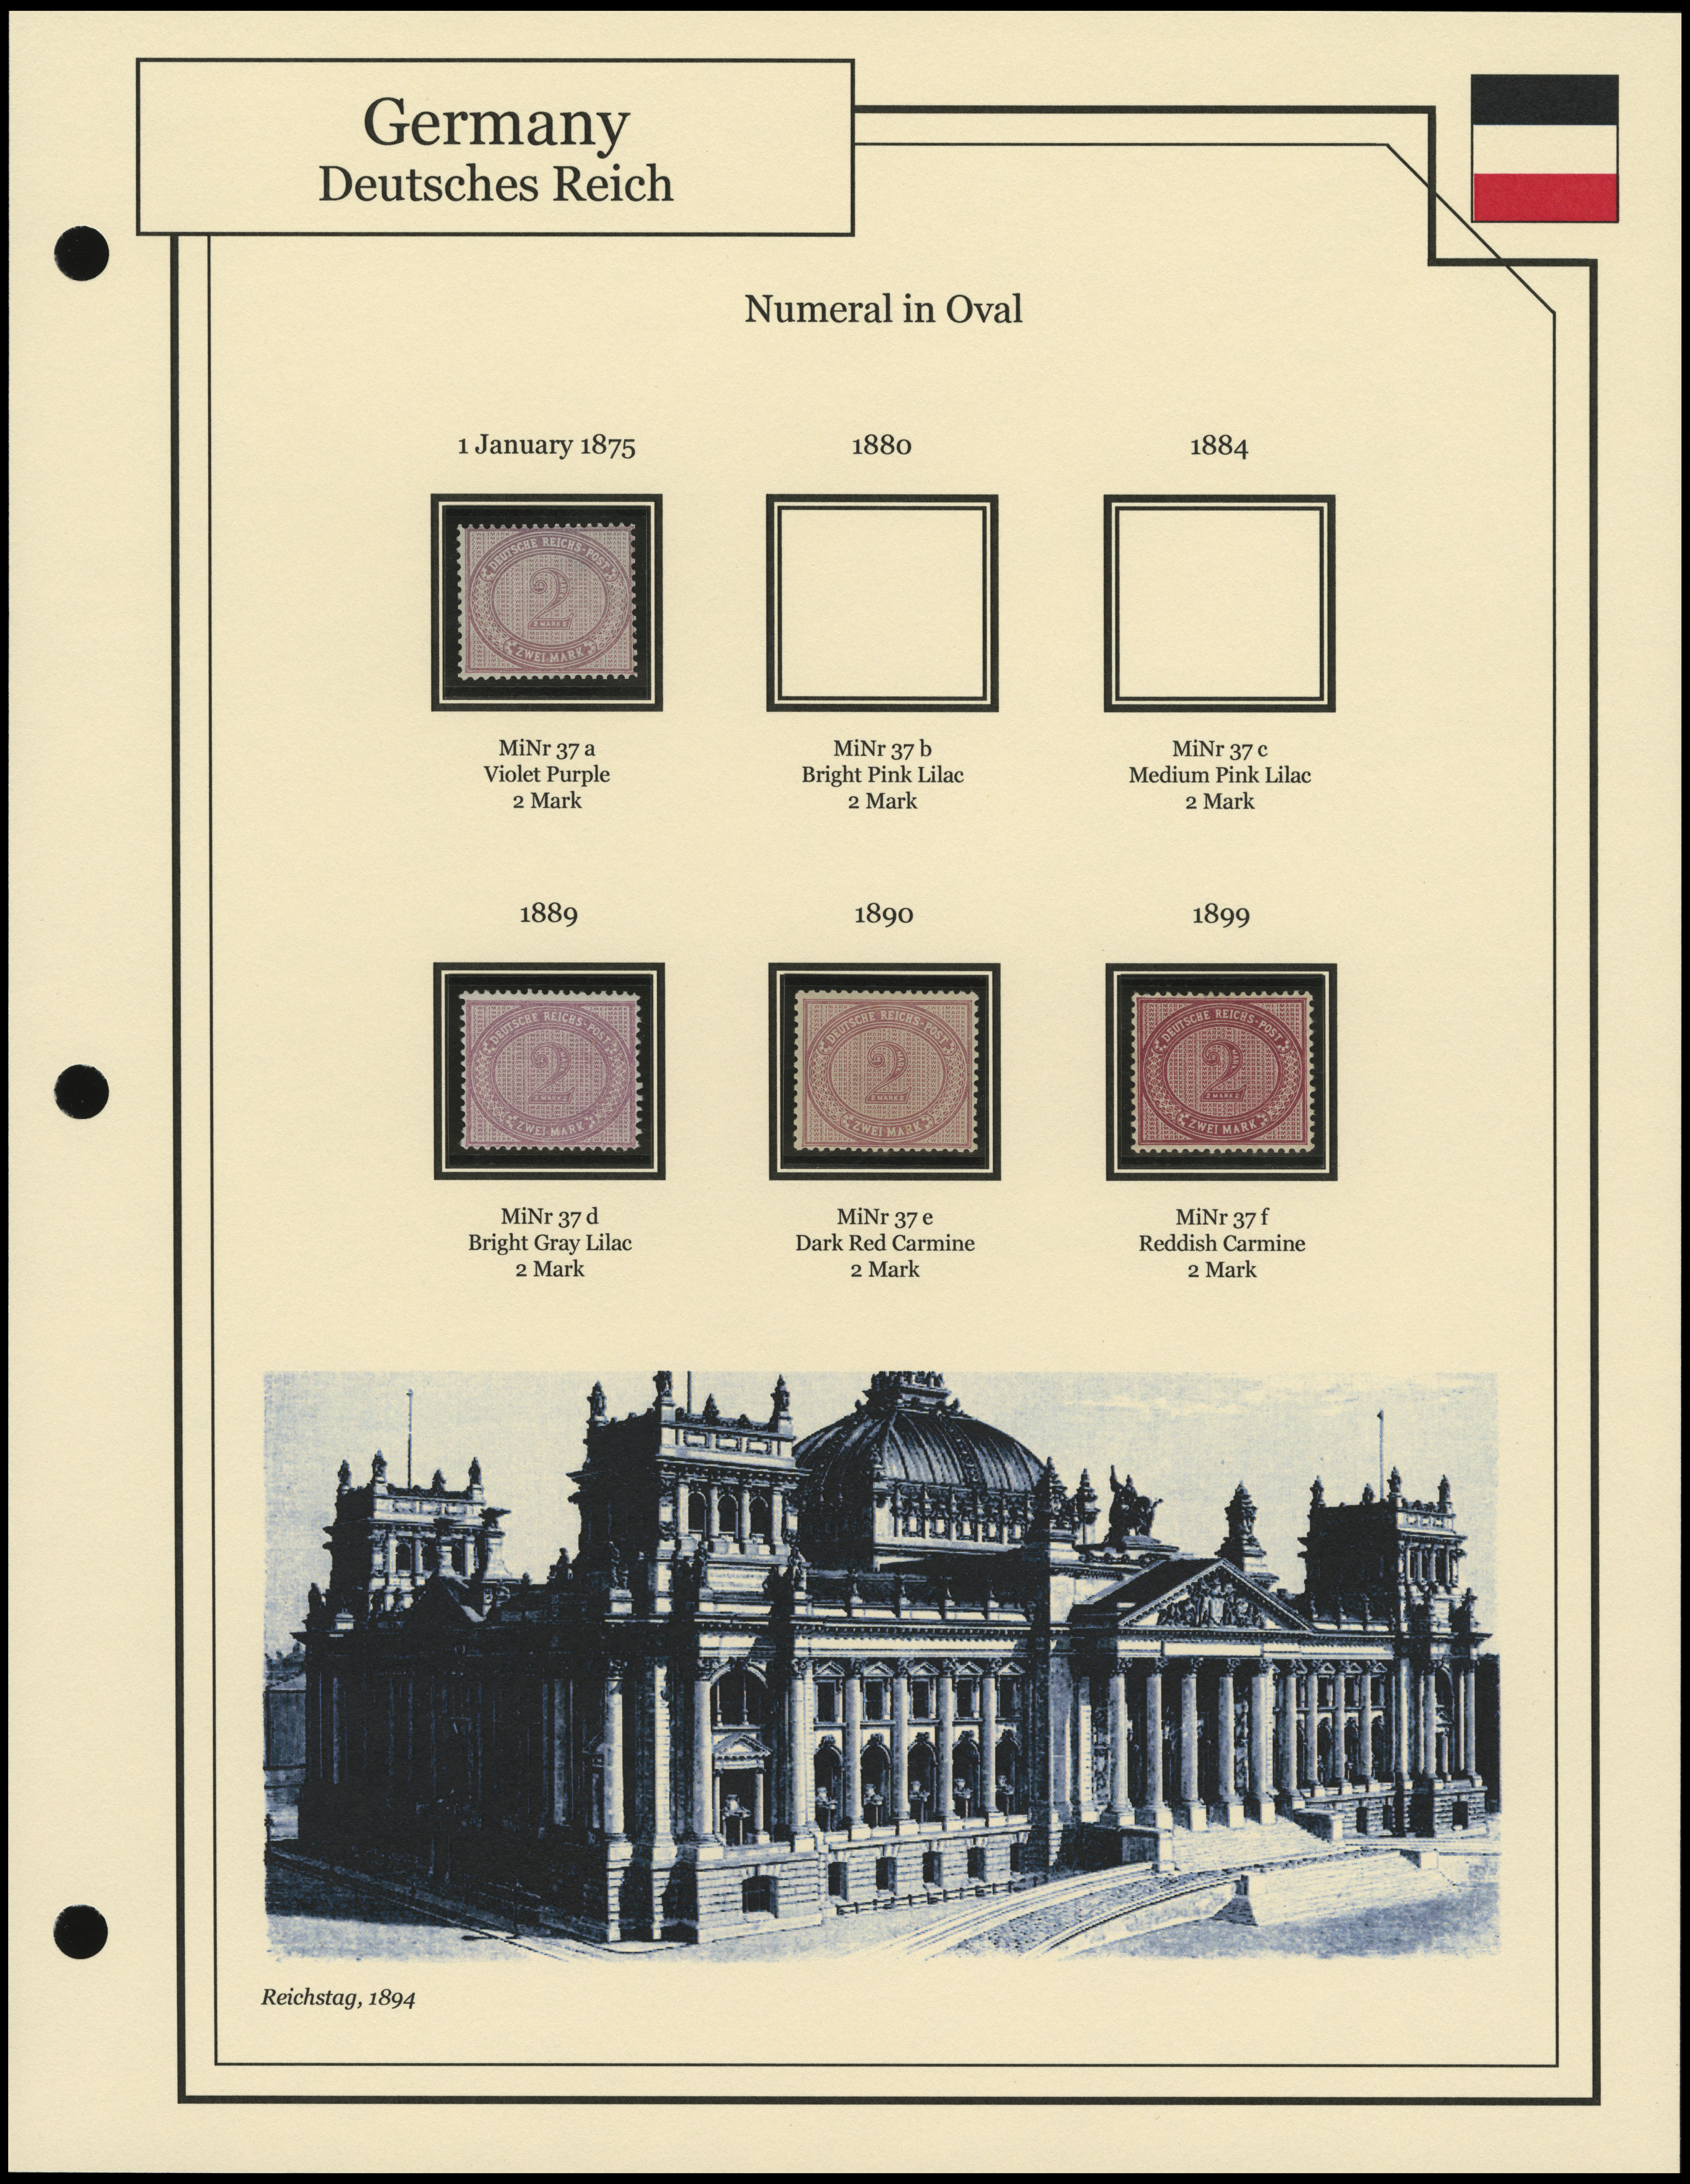 National Stamp Collecting Month: The History & Use of Stamp